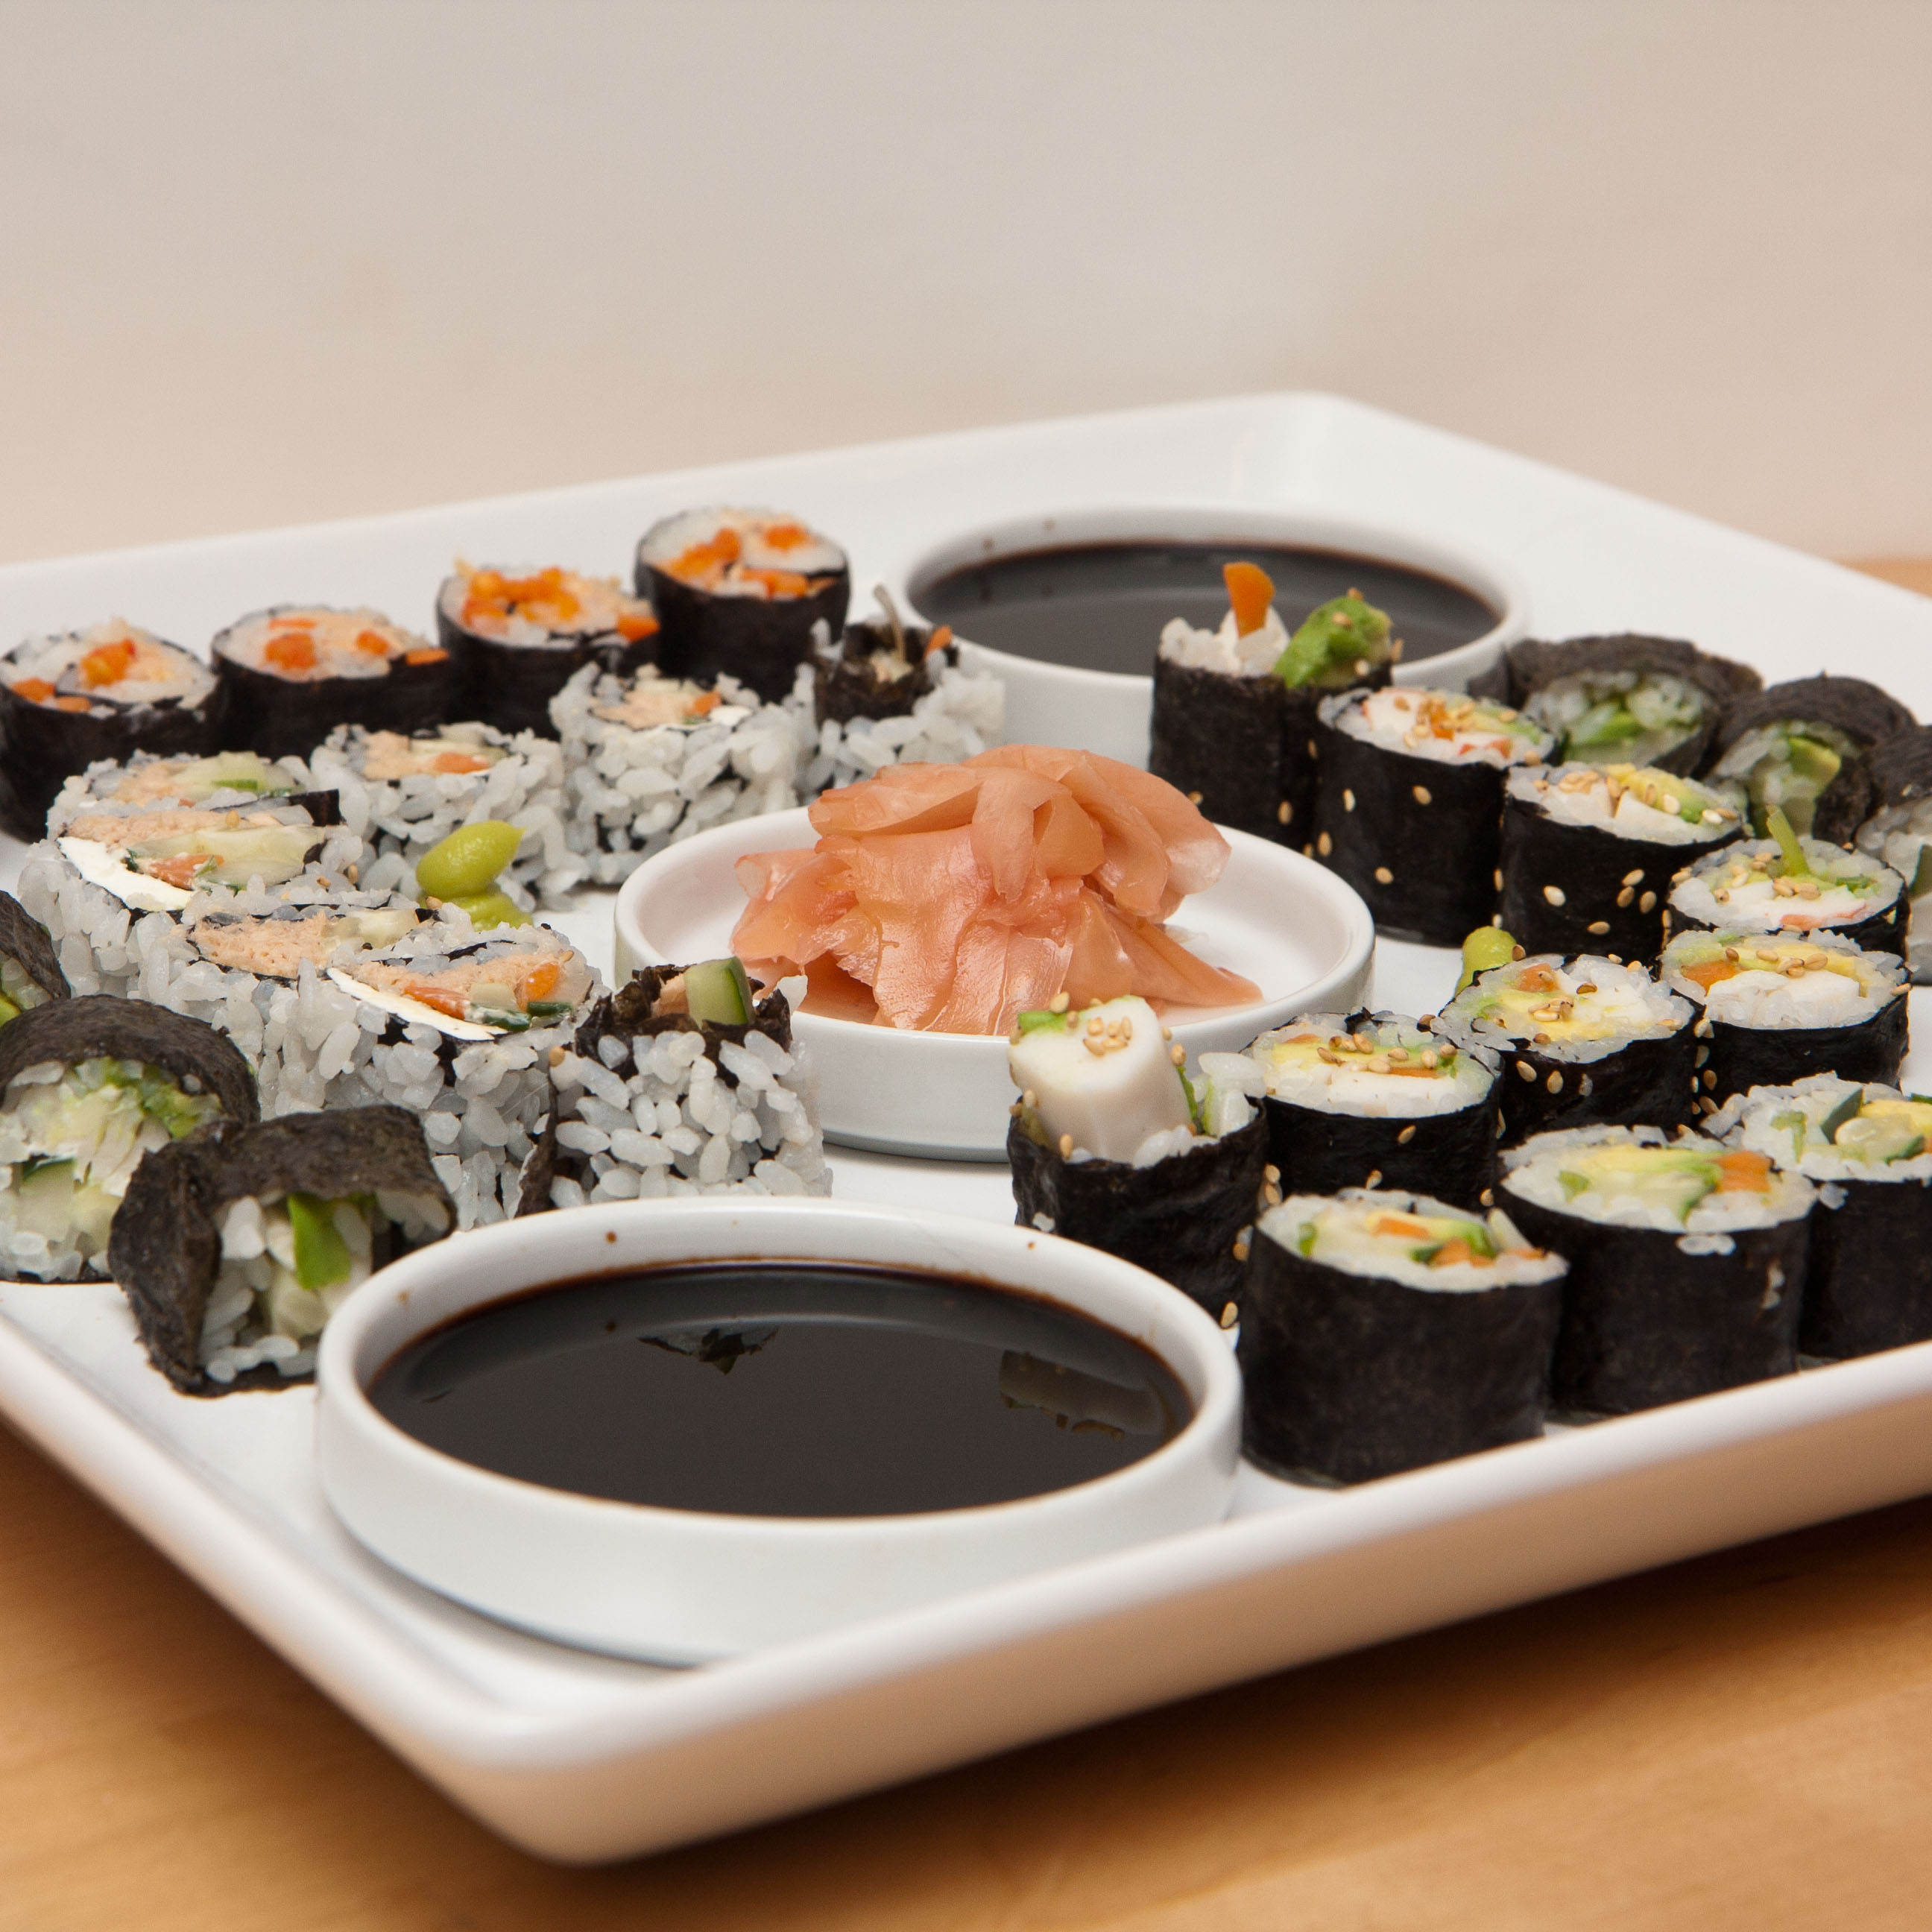 People interested in sushi